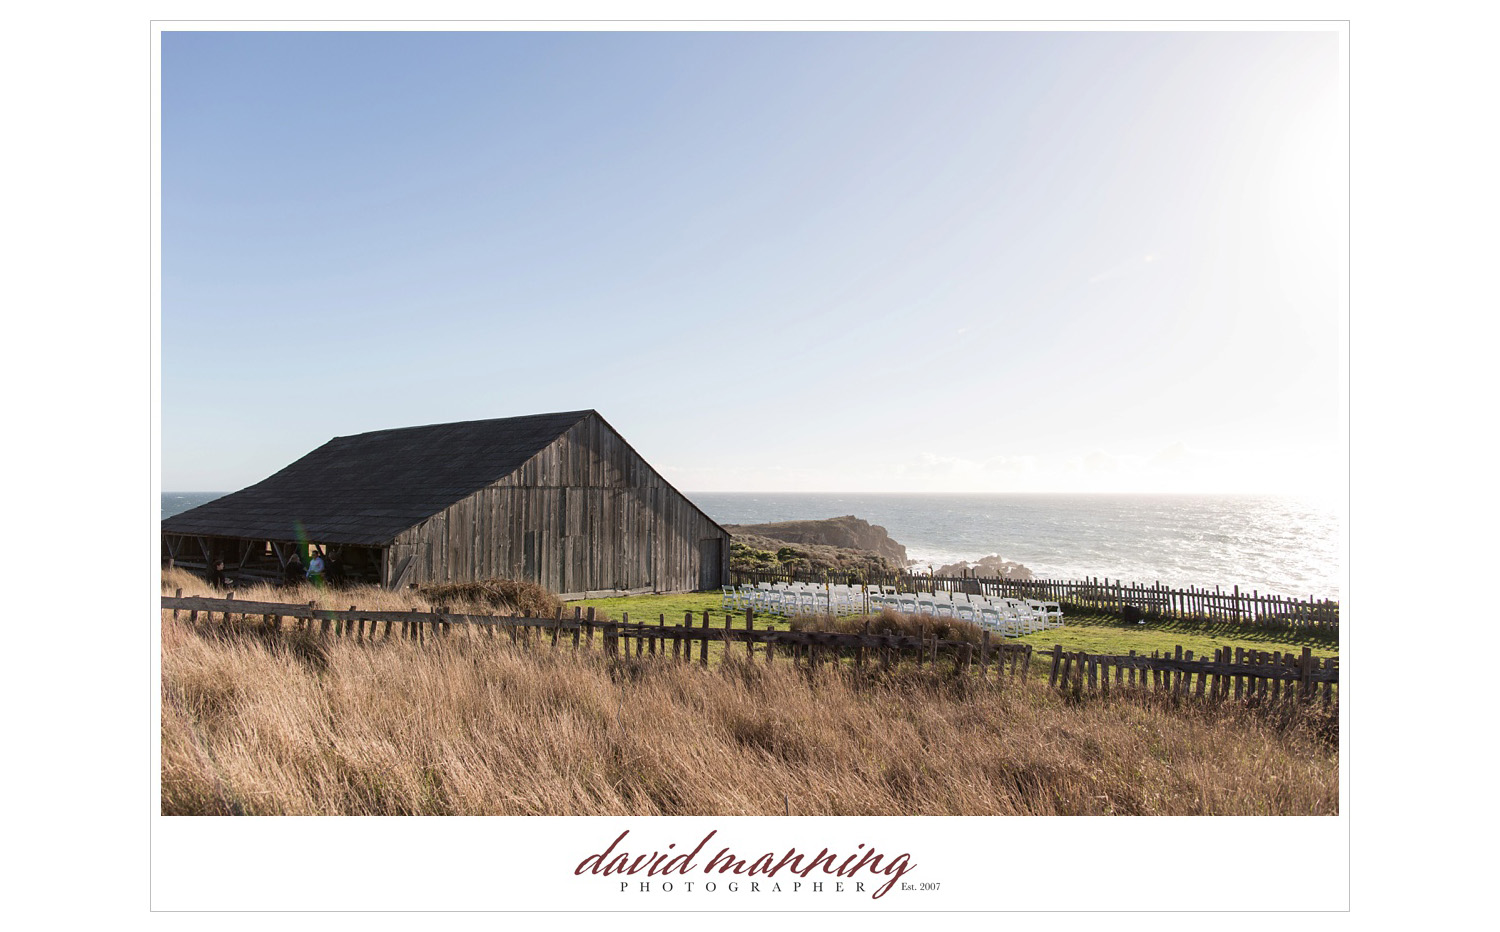 Sea-Ranch-Sonoma-Destination-Wedding-David-Manning-Photographers-141101-0026.jpg